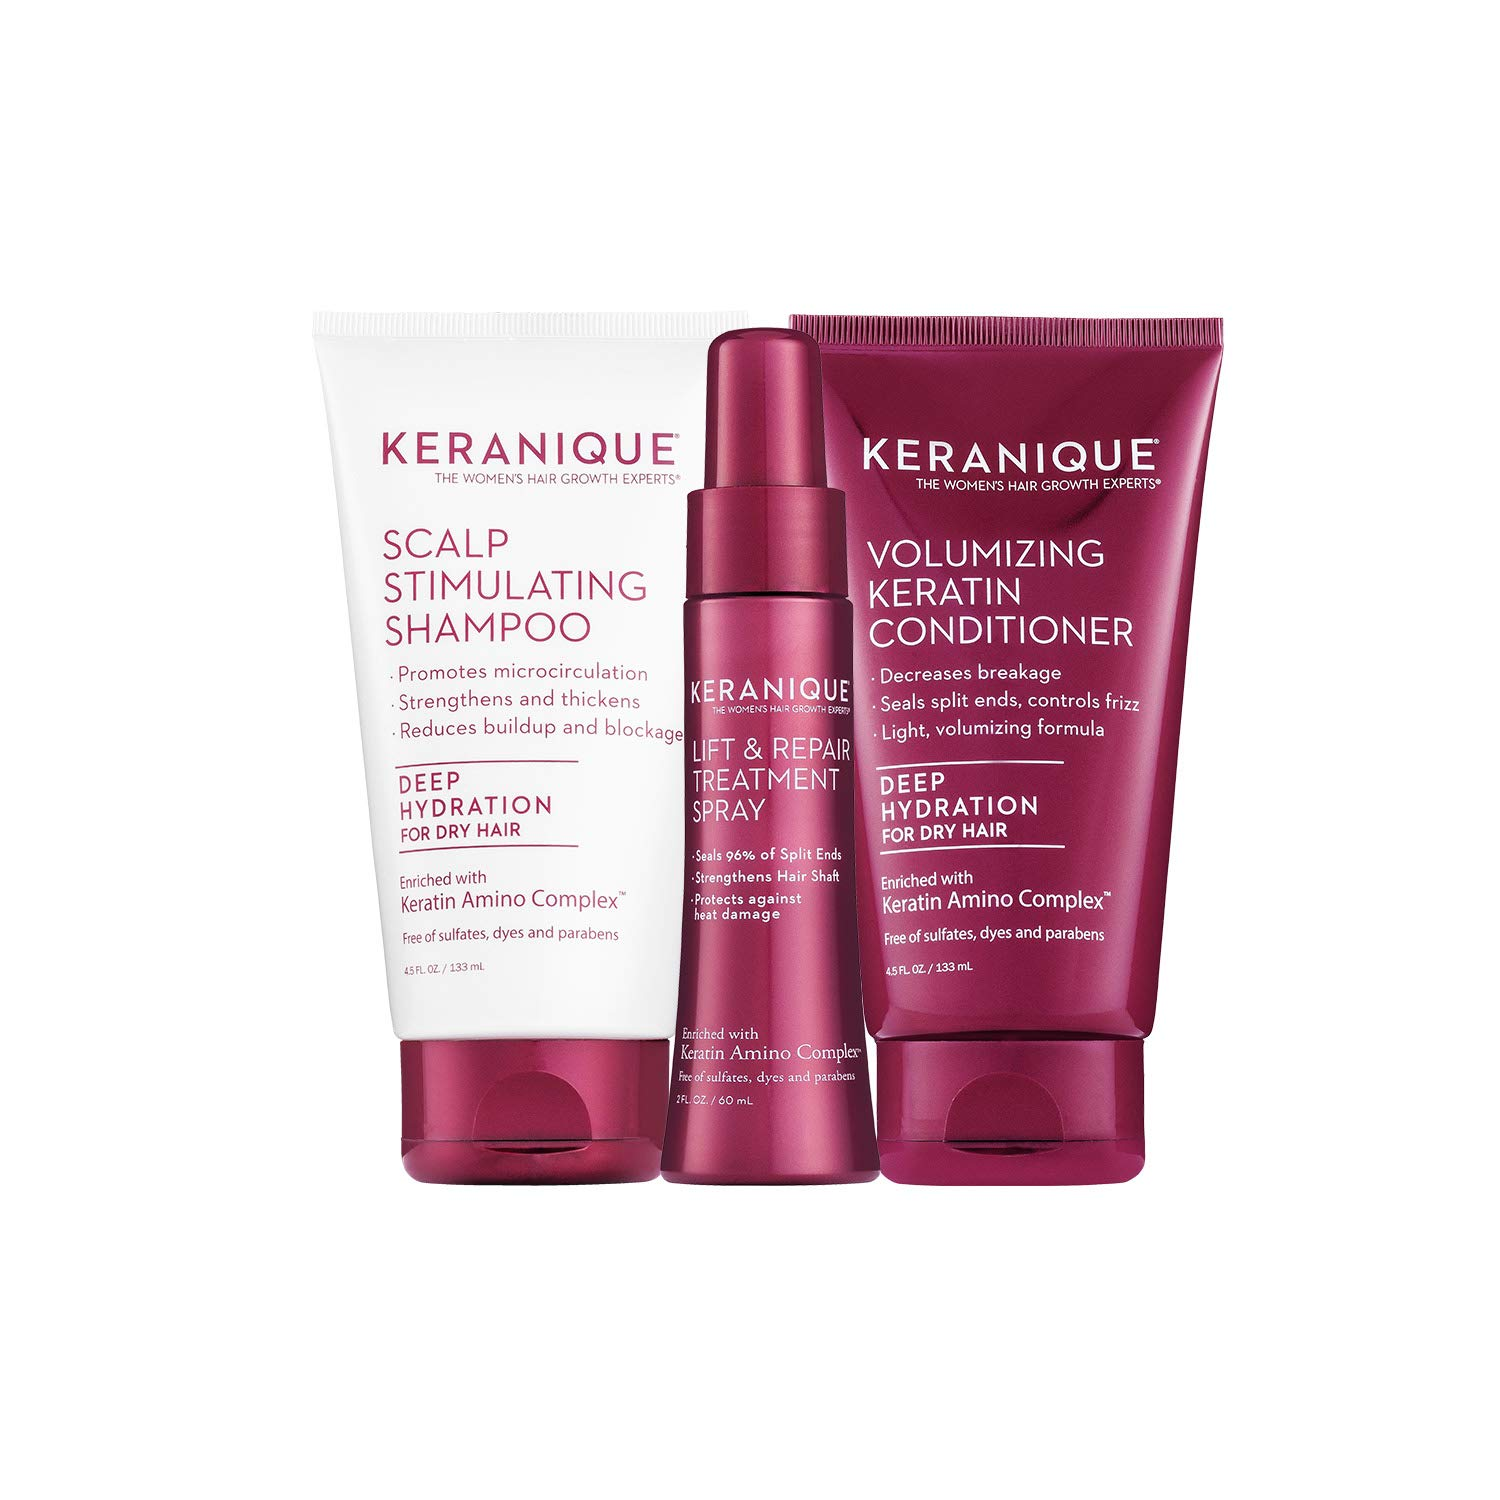 Keranique 30 Day Lift & Repair Kit - Deep Hydration | Shampoo, Conditioner, and Lift & Repair Treatment Spray | Keratin Amino Complex | Seals Split Ends | Free of Sulfates, Dyes and Parabens by Keranique